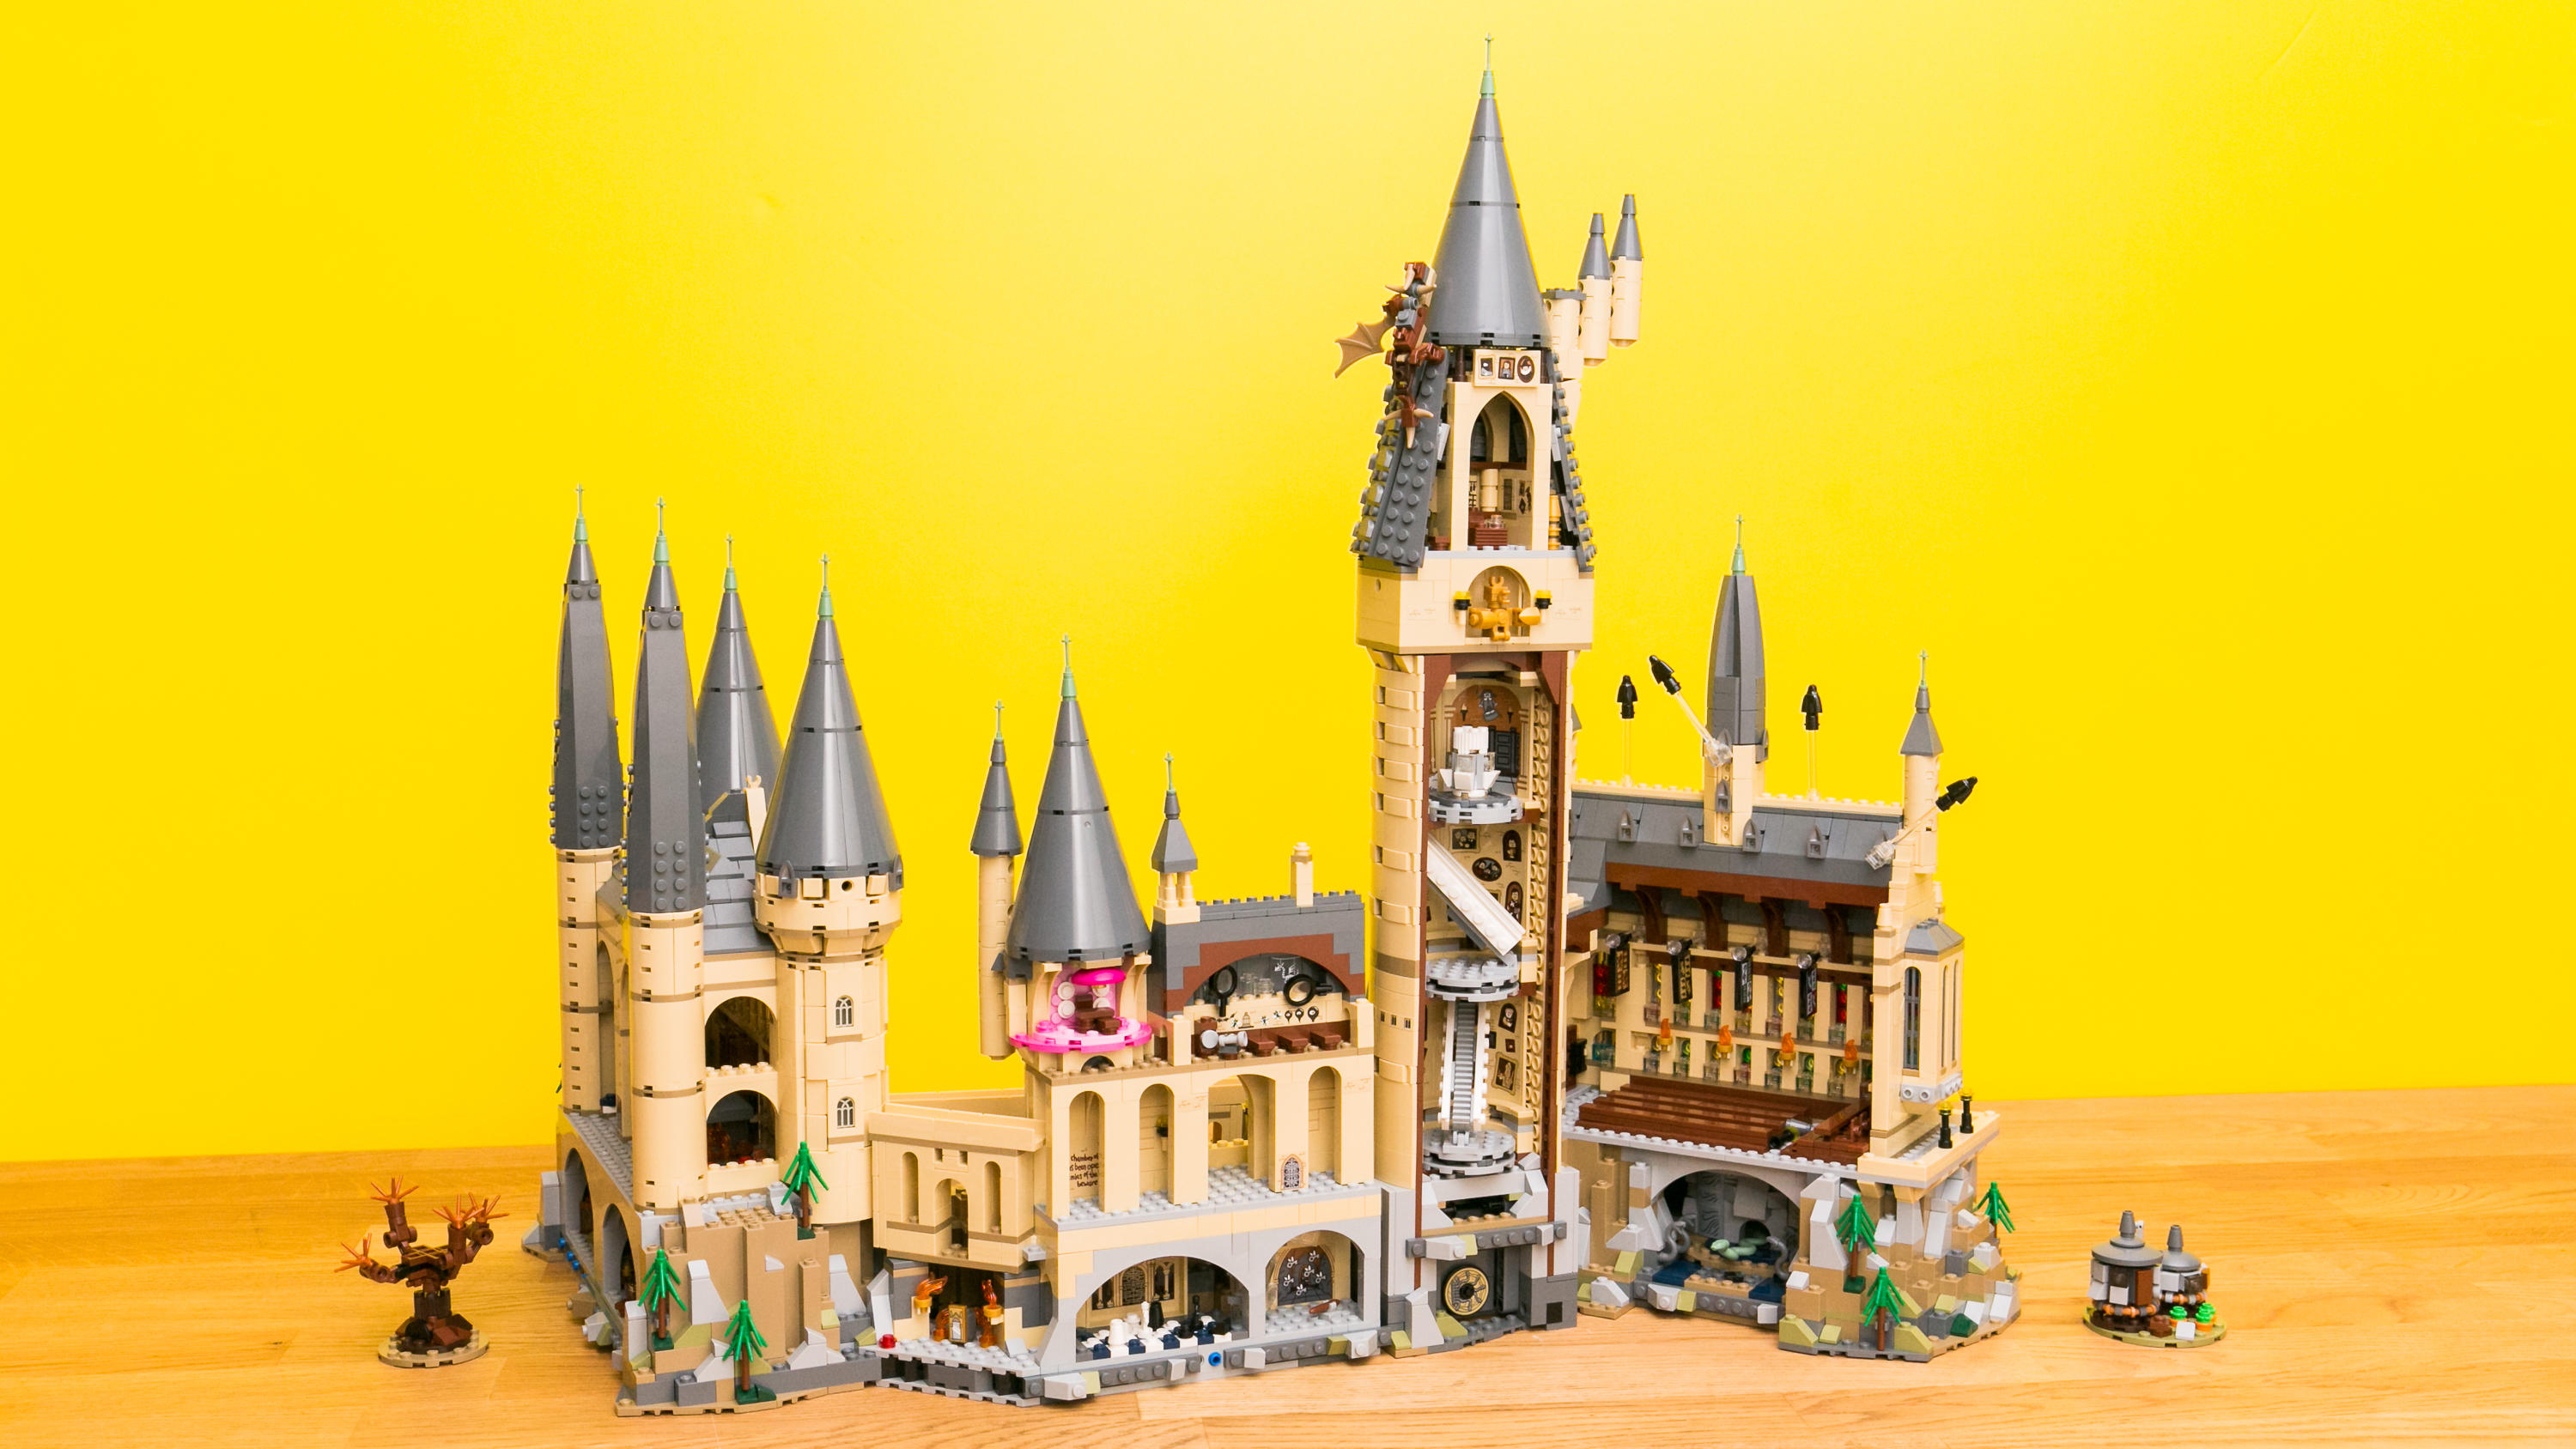 Video: Lego's giant Hogwarts brings Harry Potter's school to life